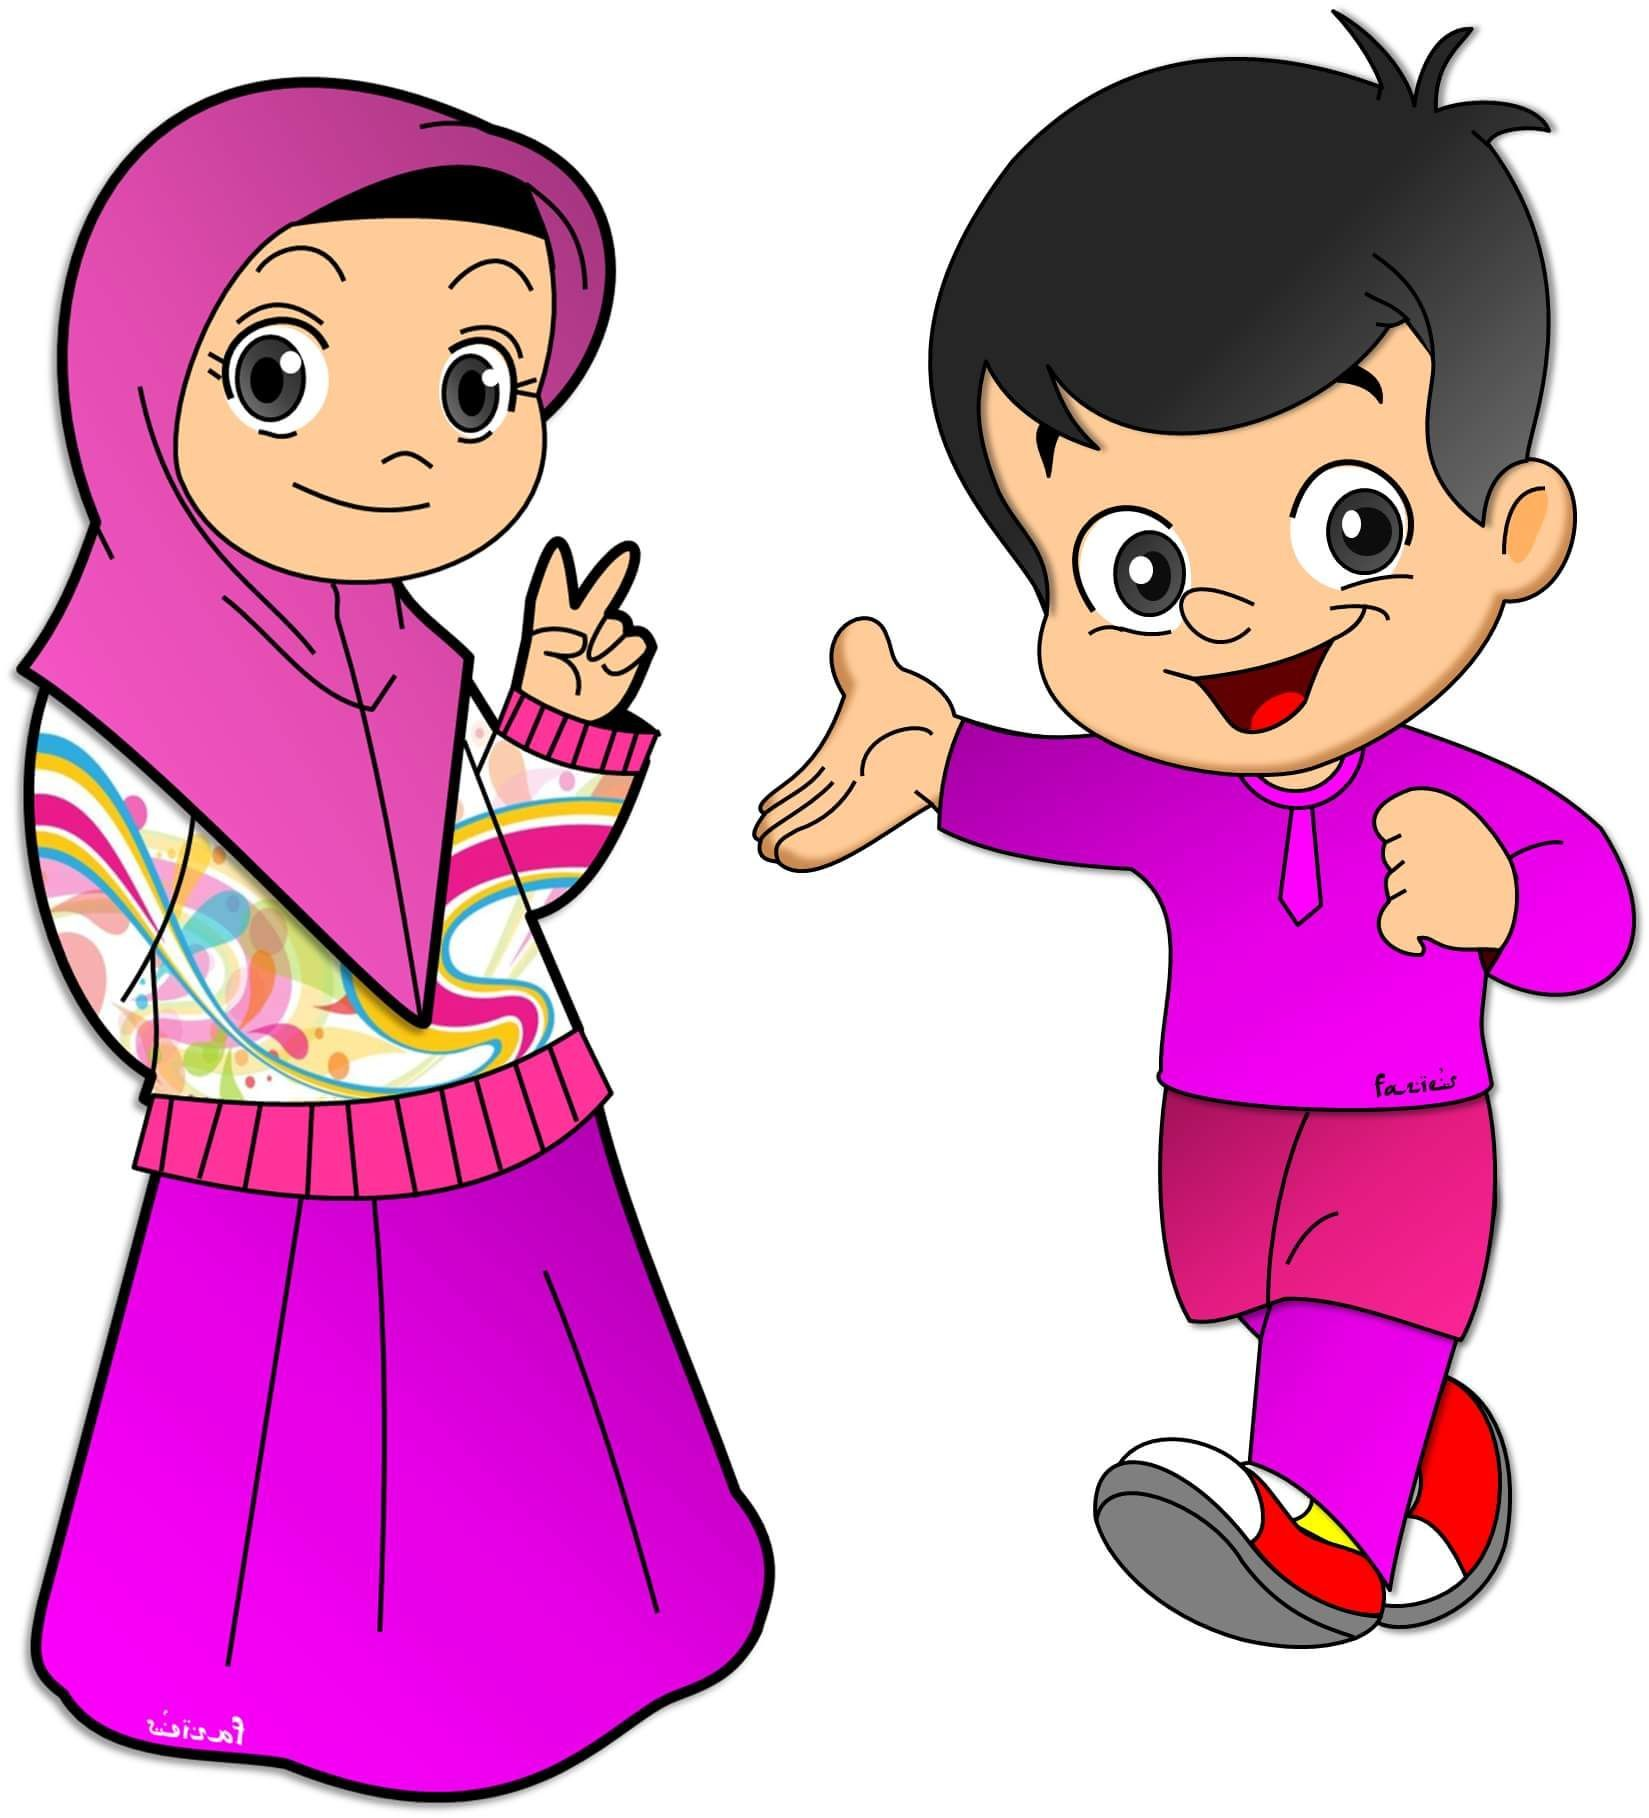 You searched for Kartun Anak Sholeh Mengaji Kartun, Anak